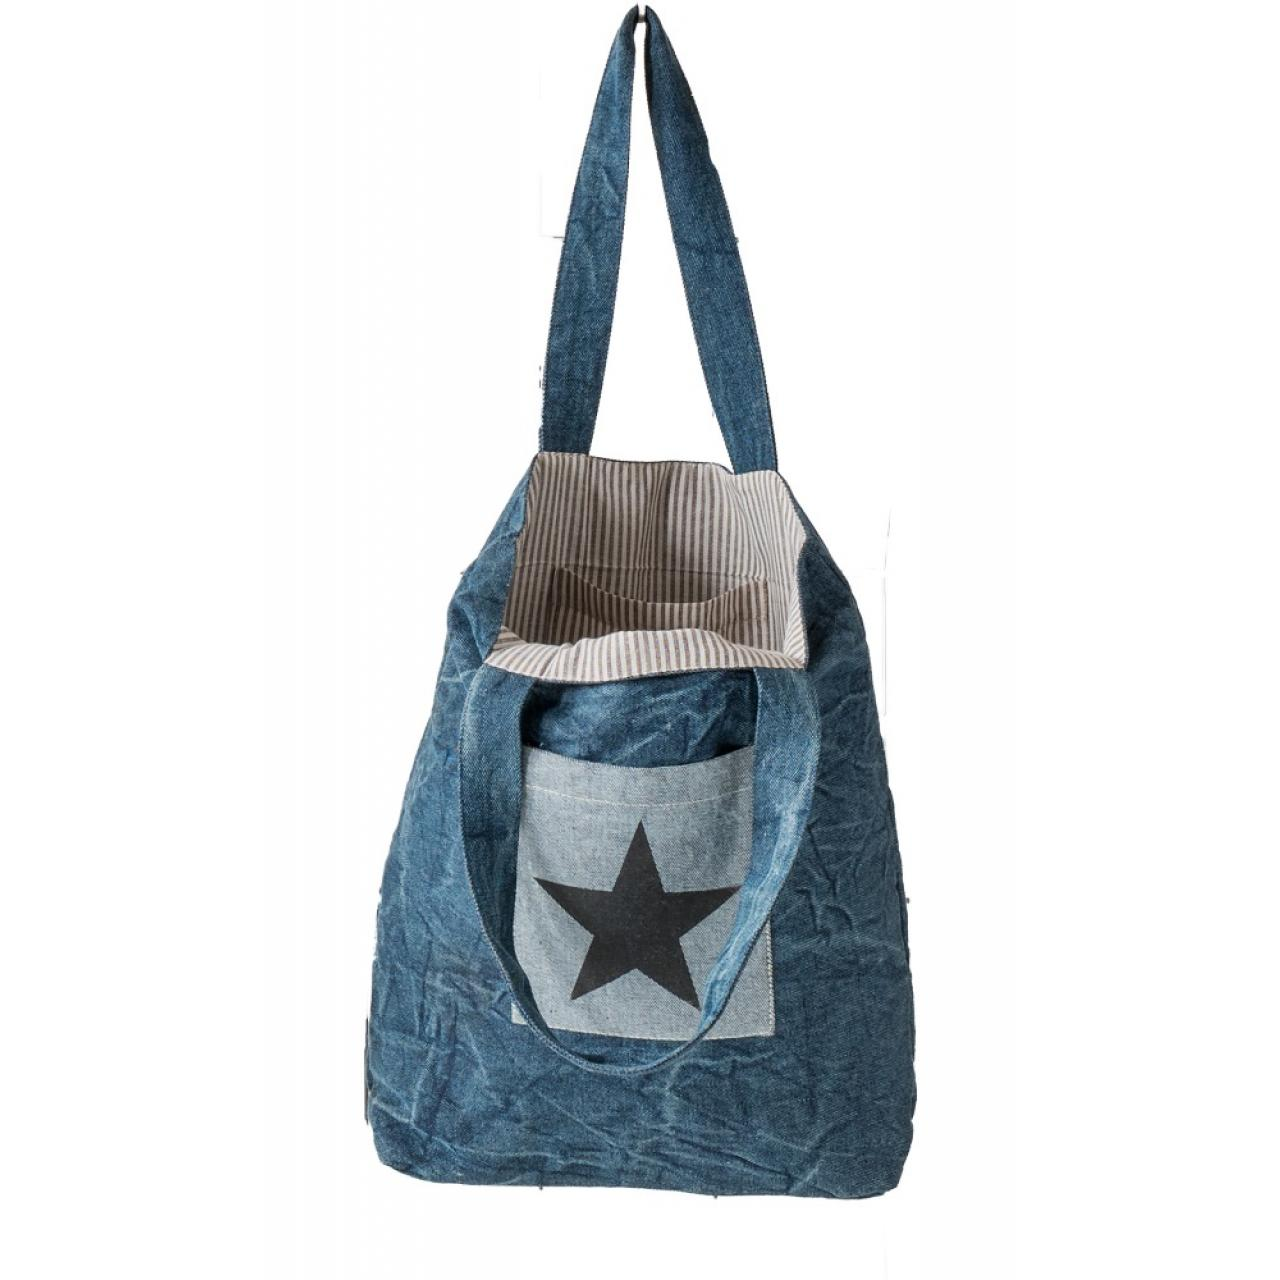 Tasche Peggy 61 - Jeans